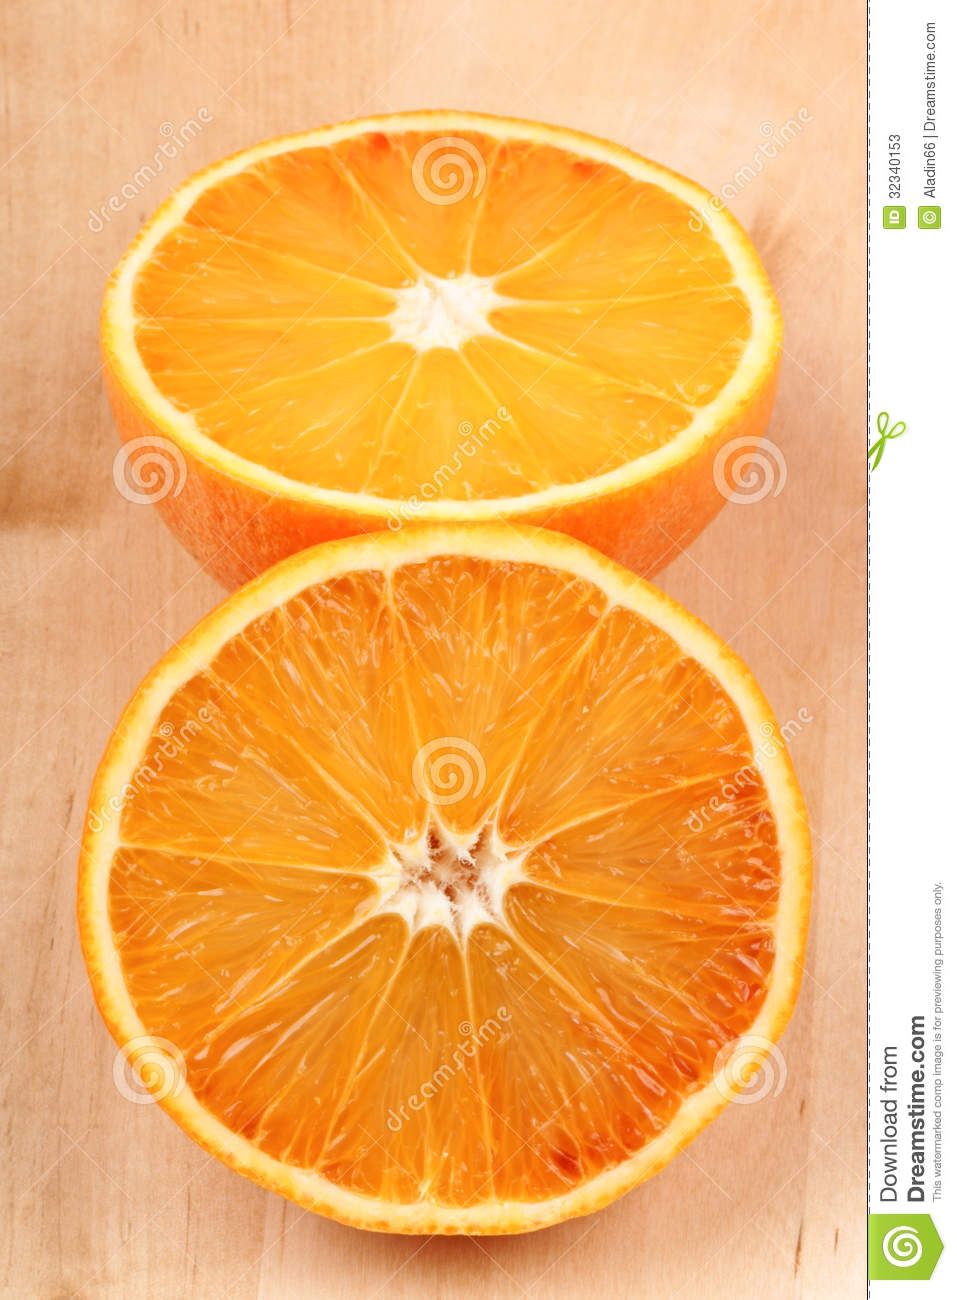 how to cut up an orange